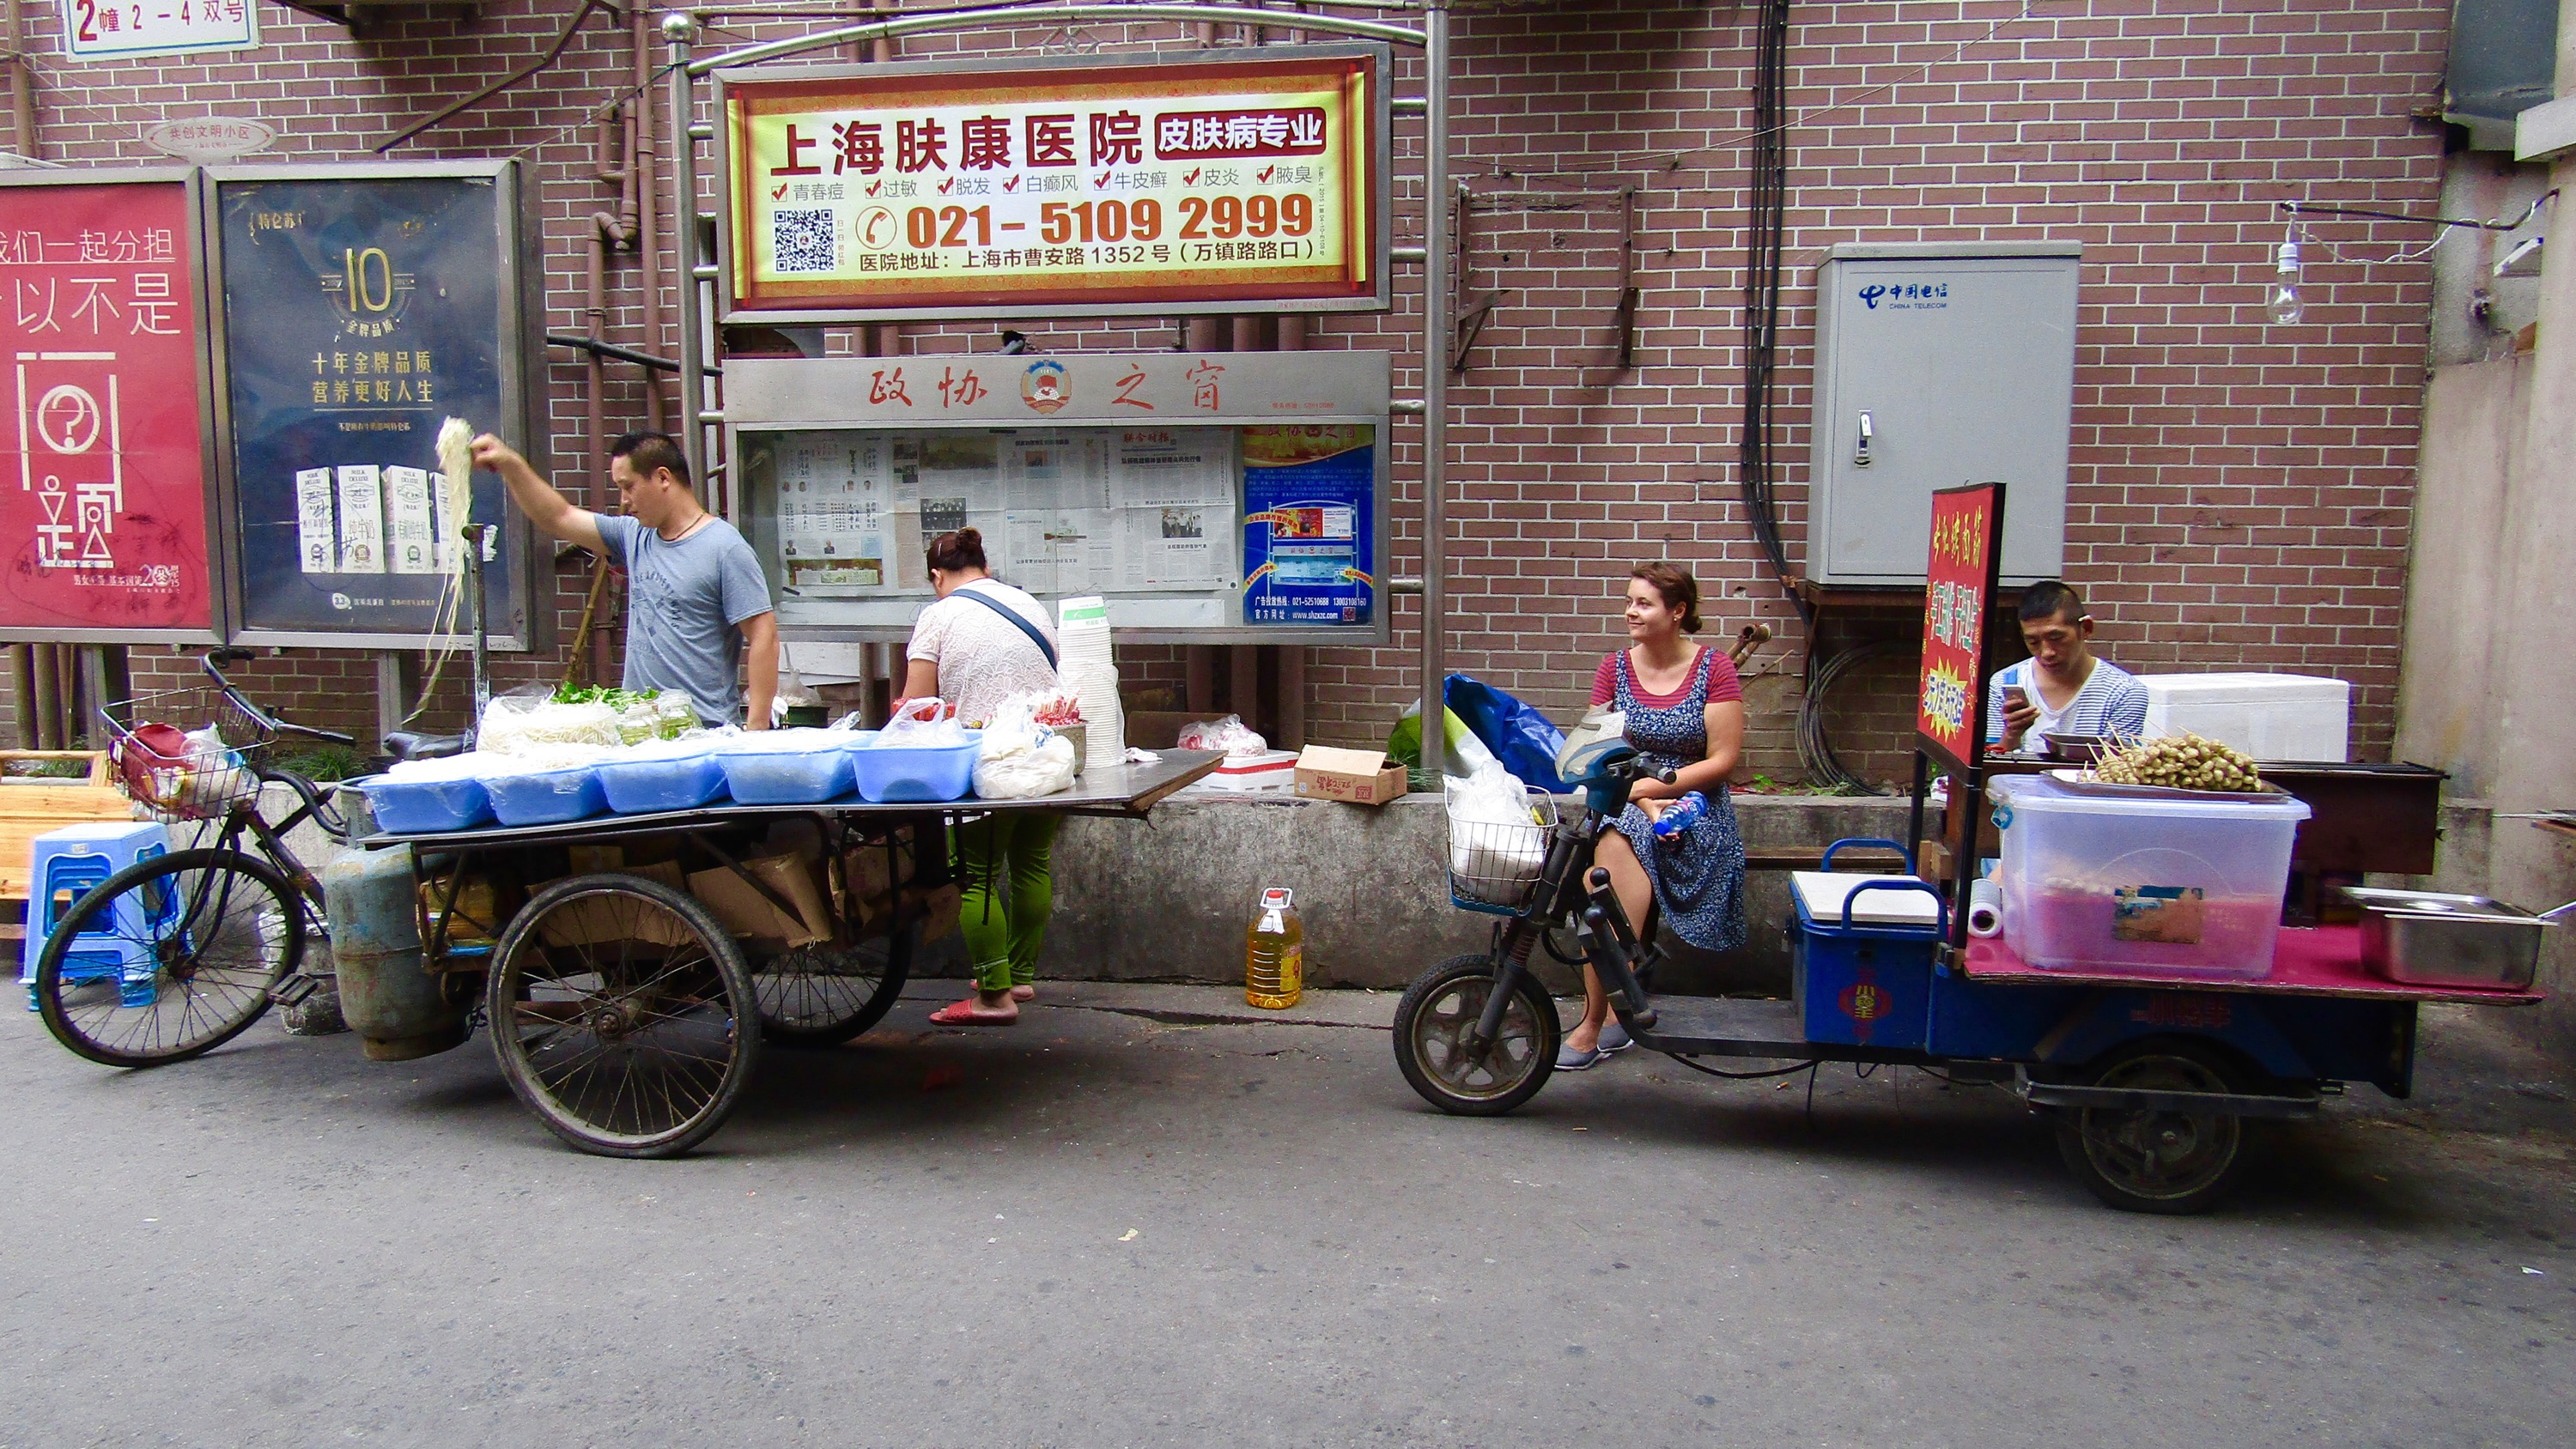 Every afternoon, this man set up his noodle stand (a bicycle with a flatbed and propane gas tank attached) around the corner from our hostel in Shanghai. He'd make stir-fried noodles and rice until late in the evening. We stopped in twice during our stay, getting a filling meal for about $1.50 USD each.